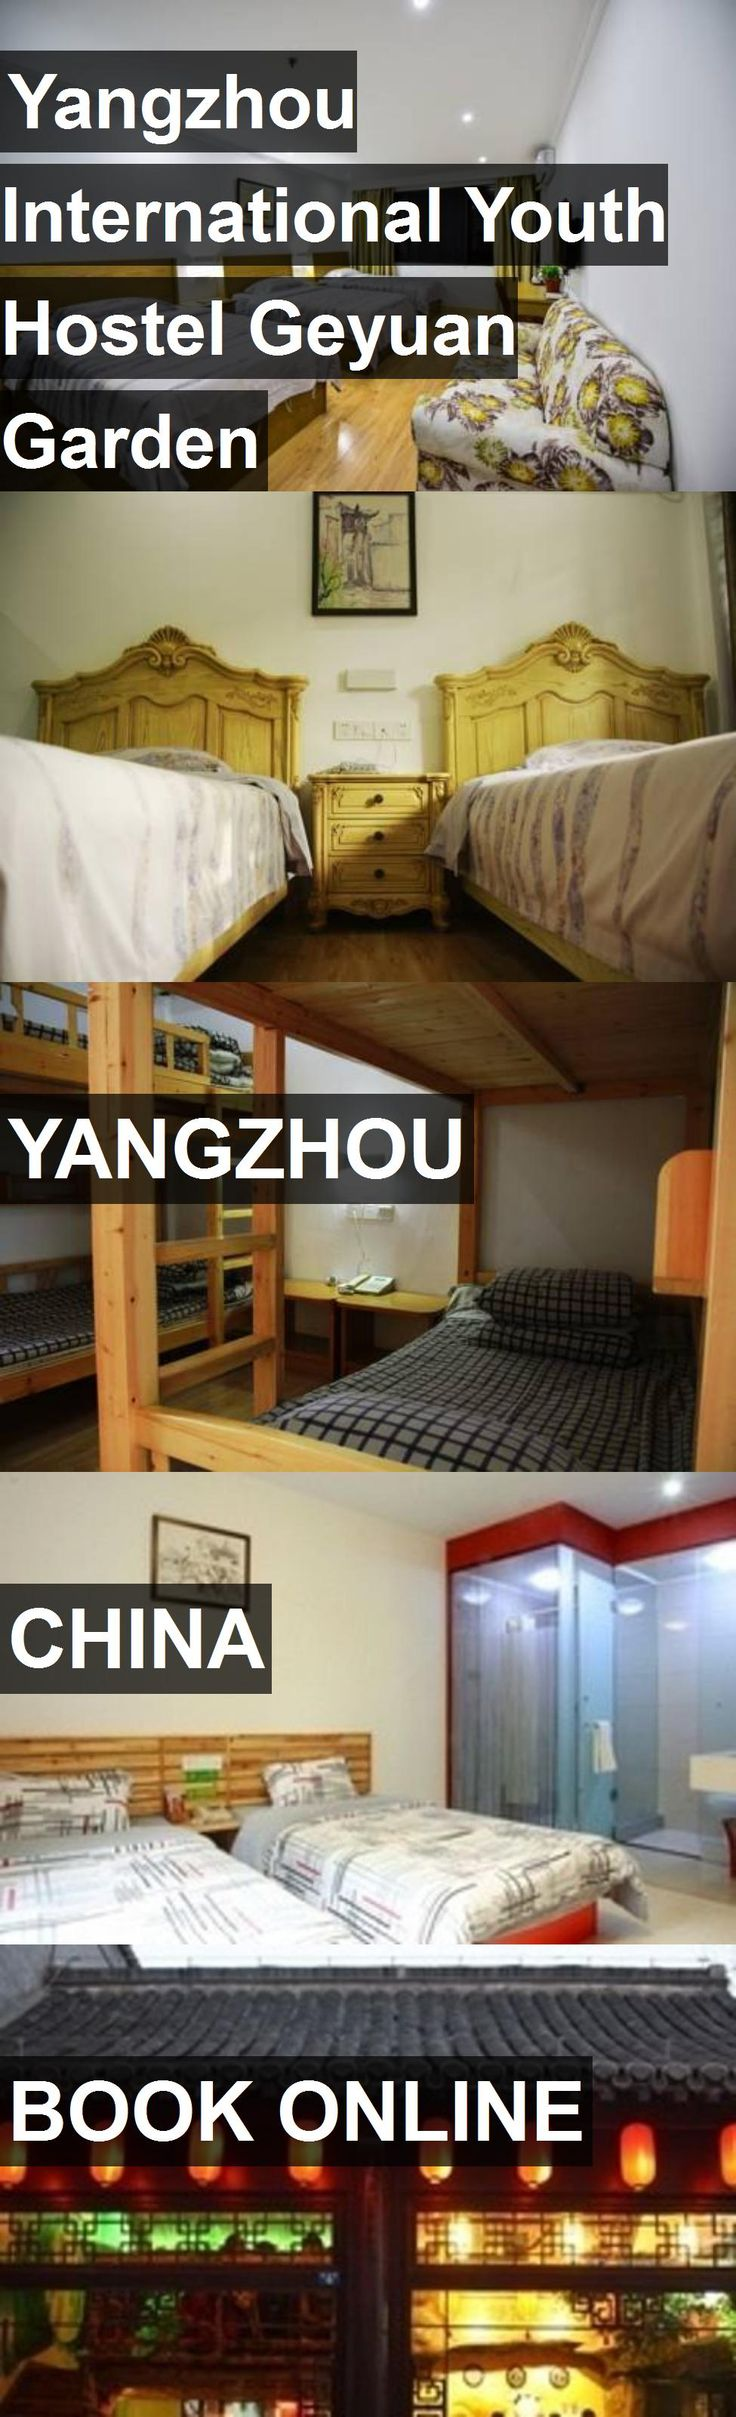 Yangzhou International Youth Hostel Geyuan Garden in Yangzhou, China. For more information, photos, reviews and best prices please follow the link. #China #Yangzhou #travel #vacation #hostel